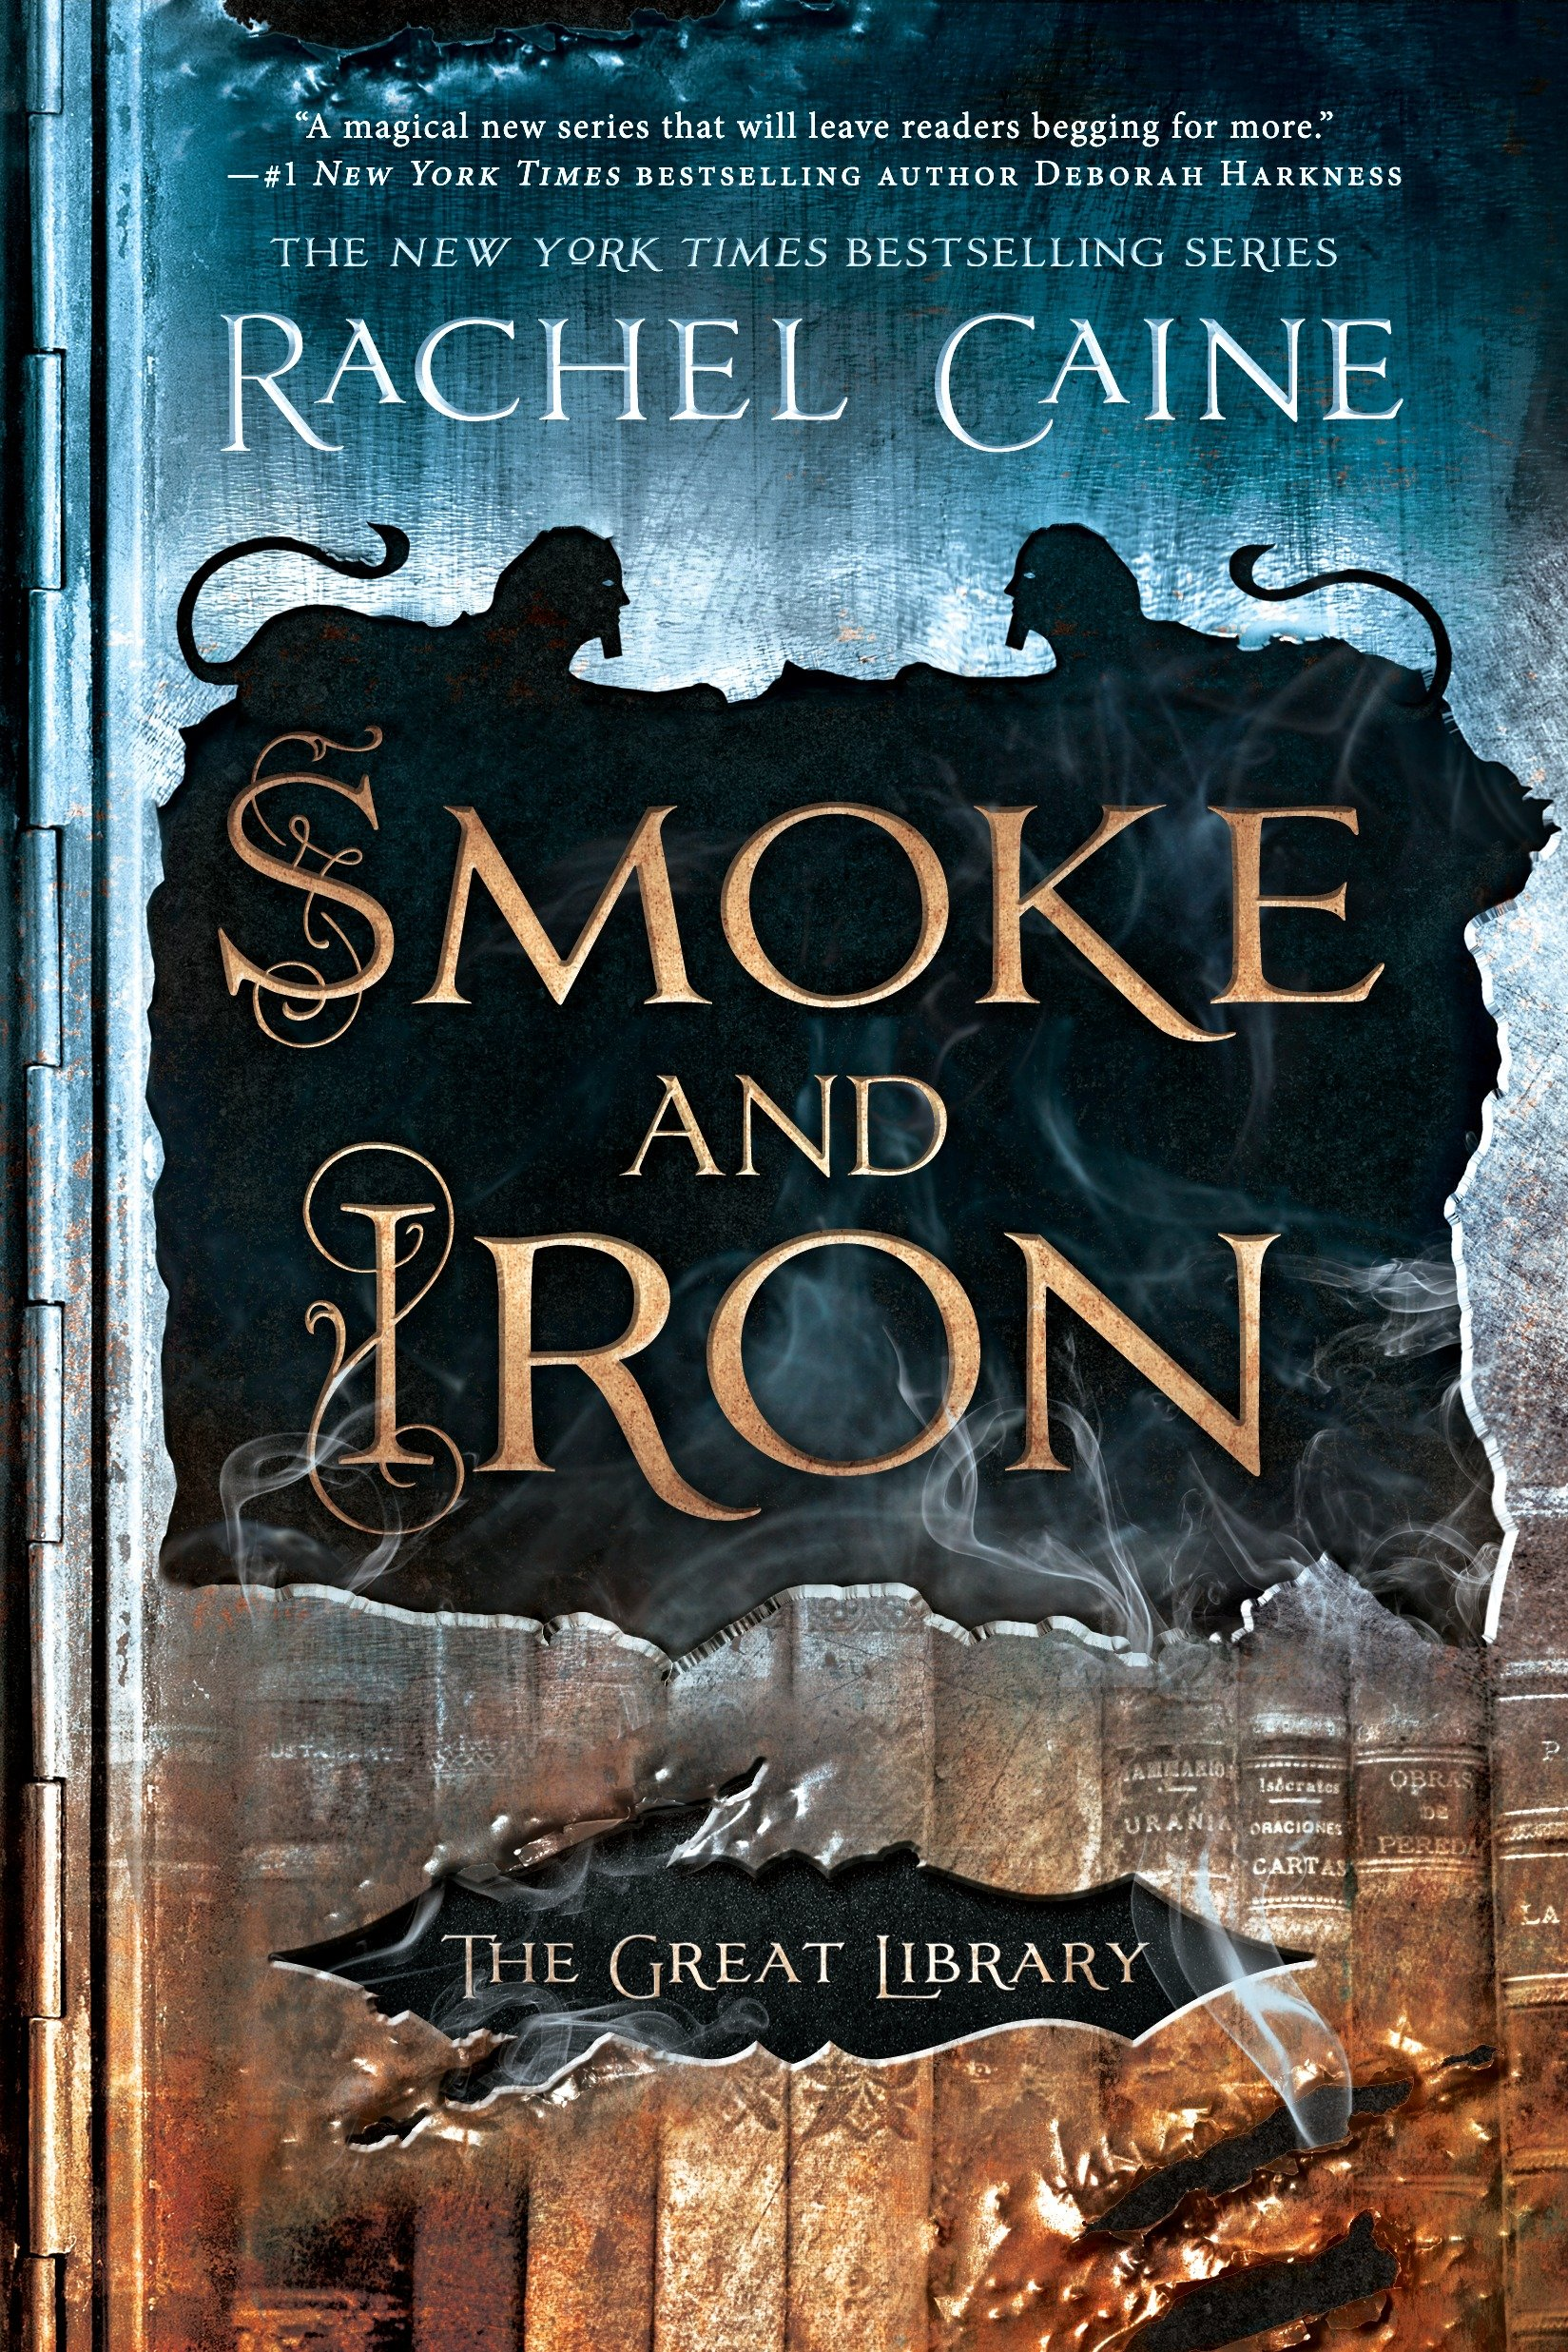 Smoke and iron cover image